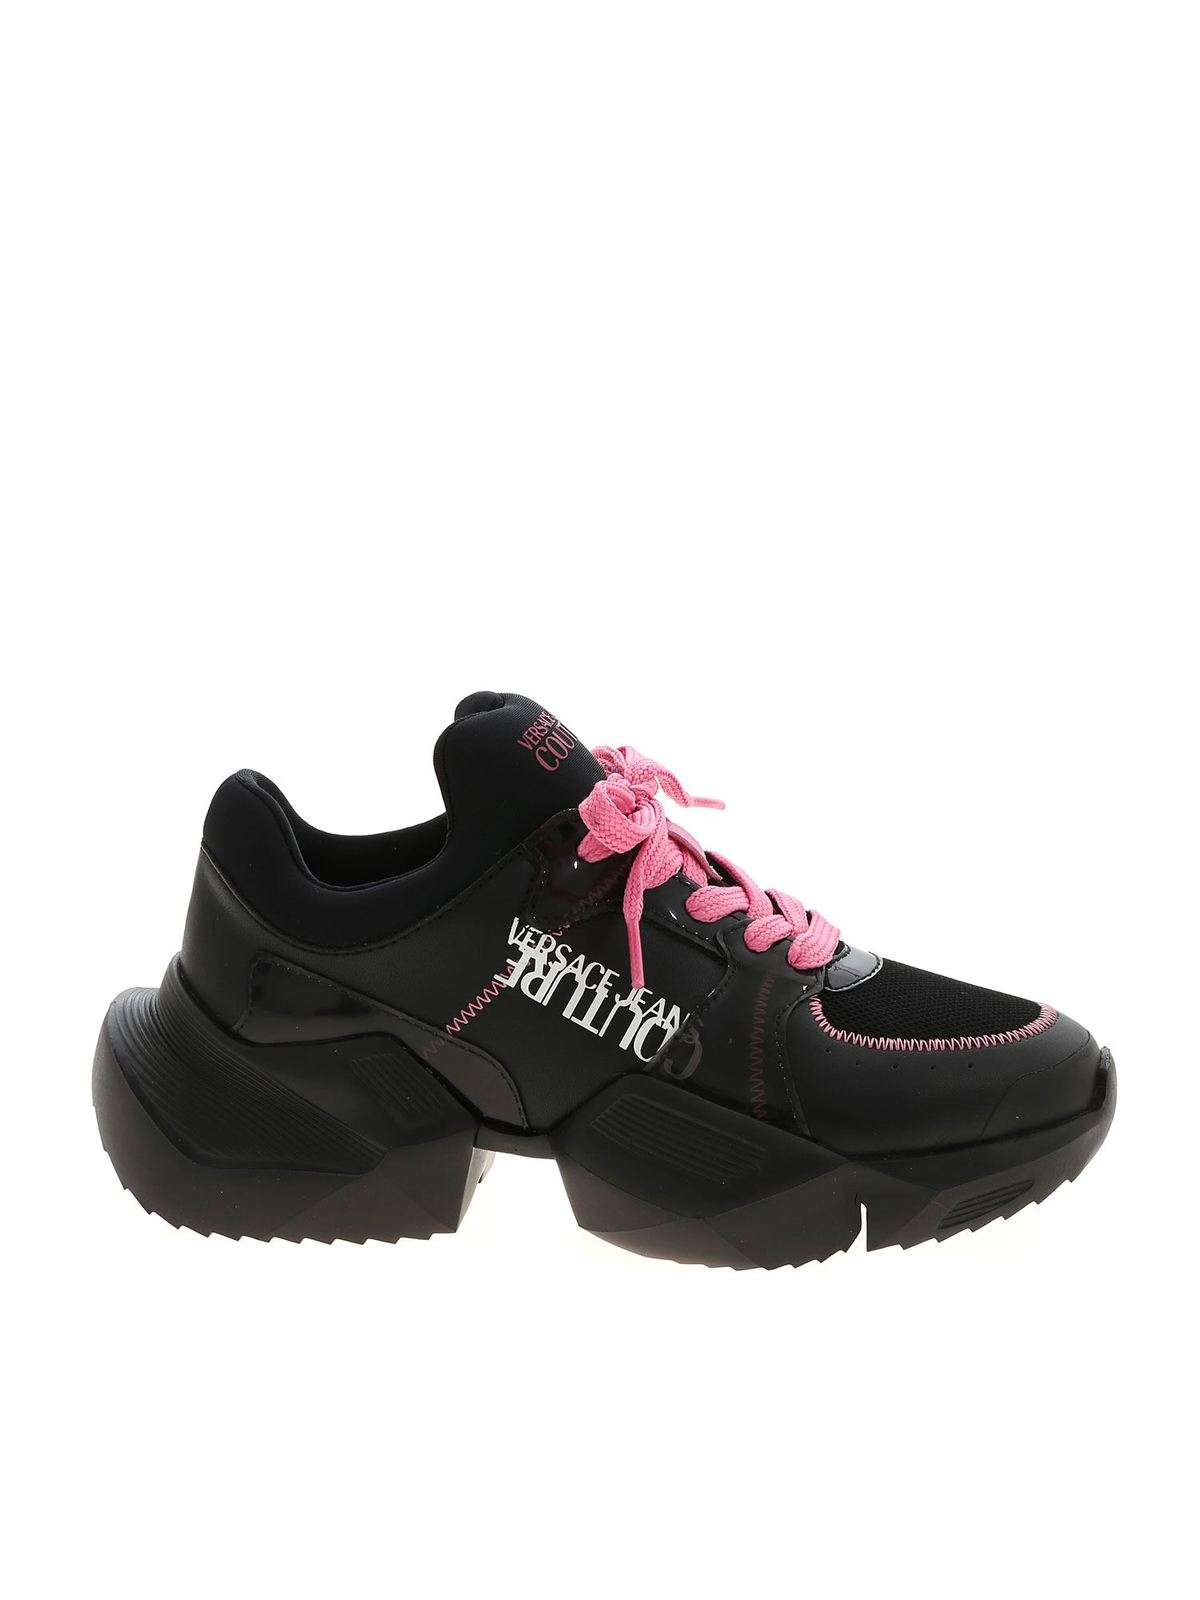 Versace Jeans Couture CONTRASTING DETAILS SNEAKERS IN BLACK